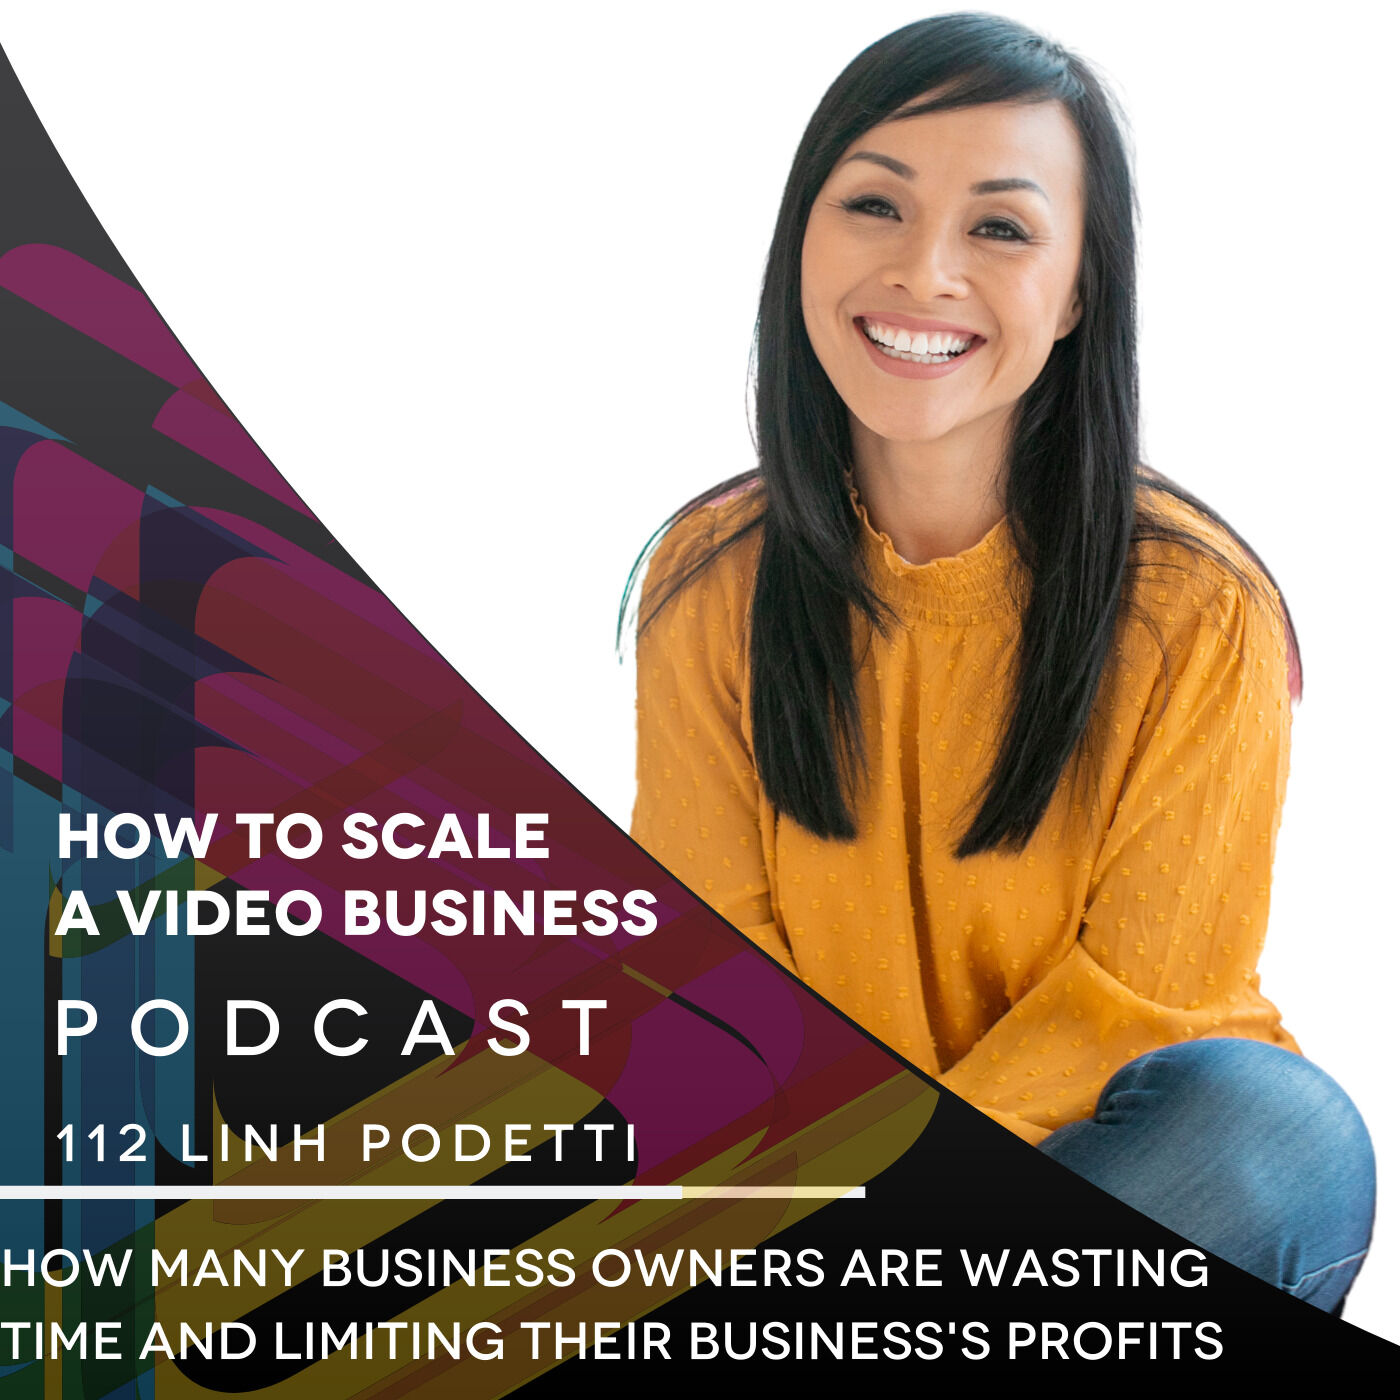 How most business owners are wasting time and limiting their business's profits - EP #112 Linh Podetti